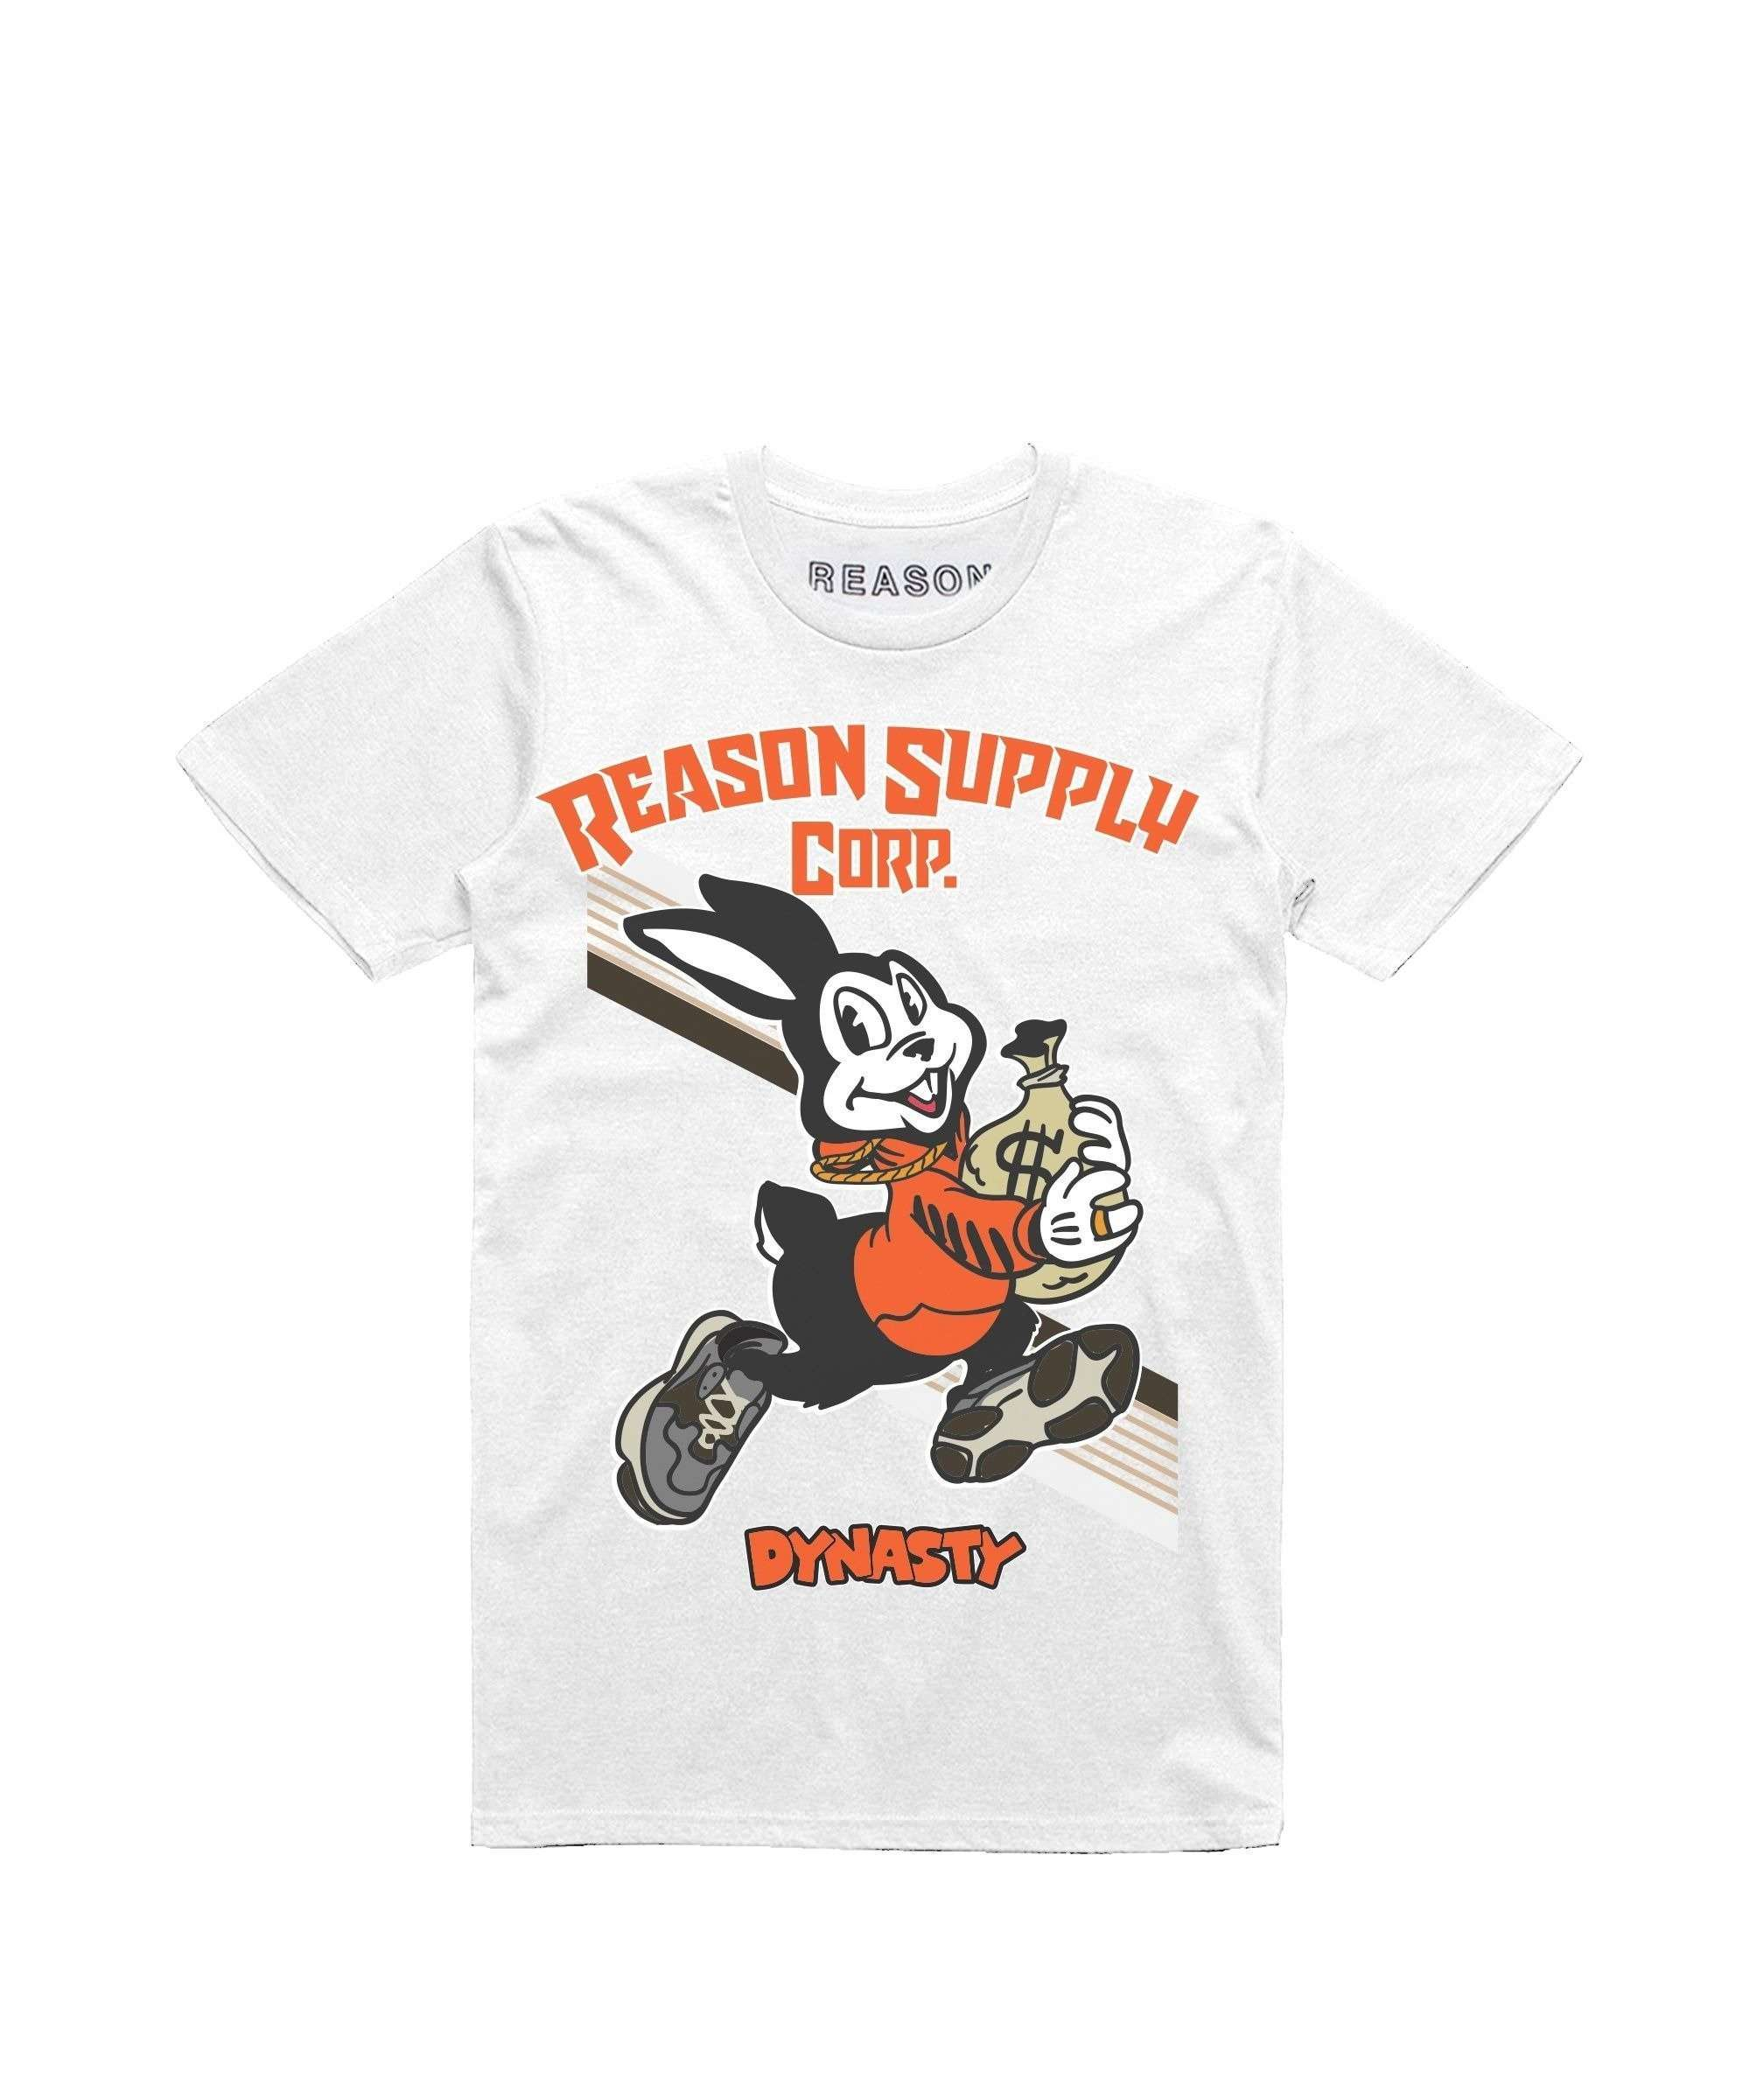 DYNASTY TEE Reason Clothing